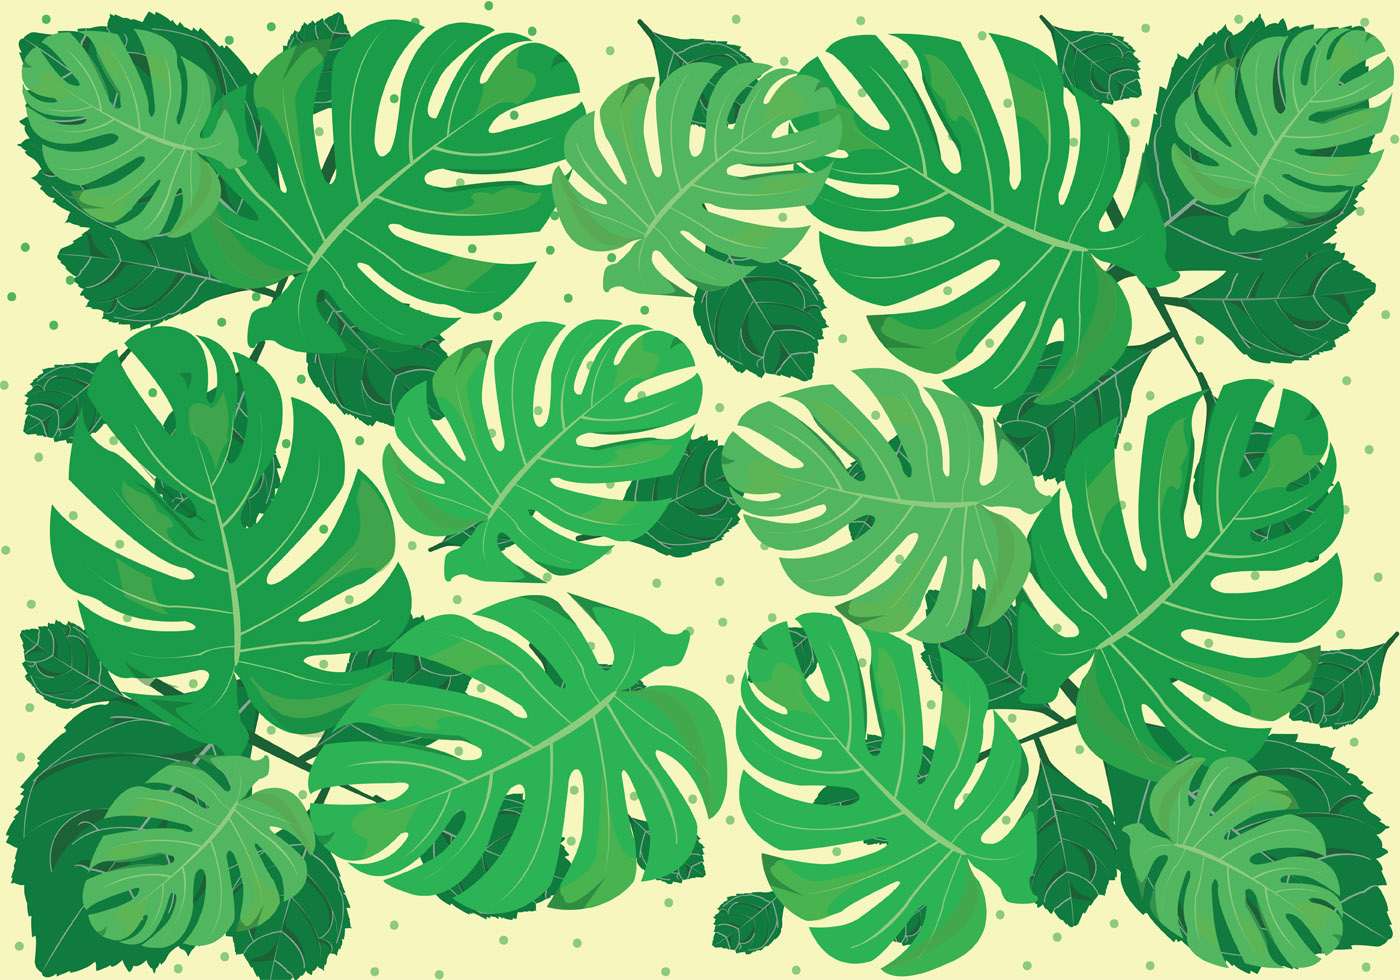 Green Animal Print Wallpaper Jungle Leaves Free Vector Art 7303 Free Downloads